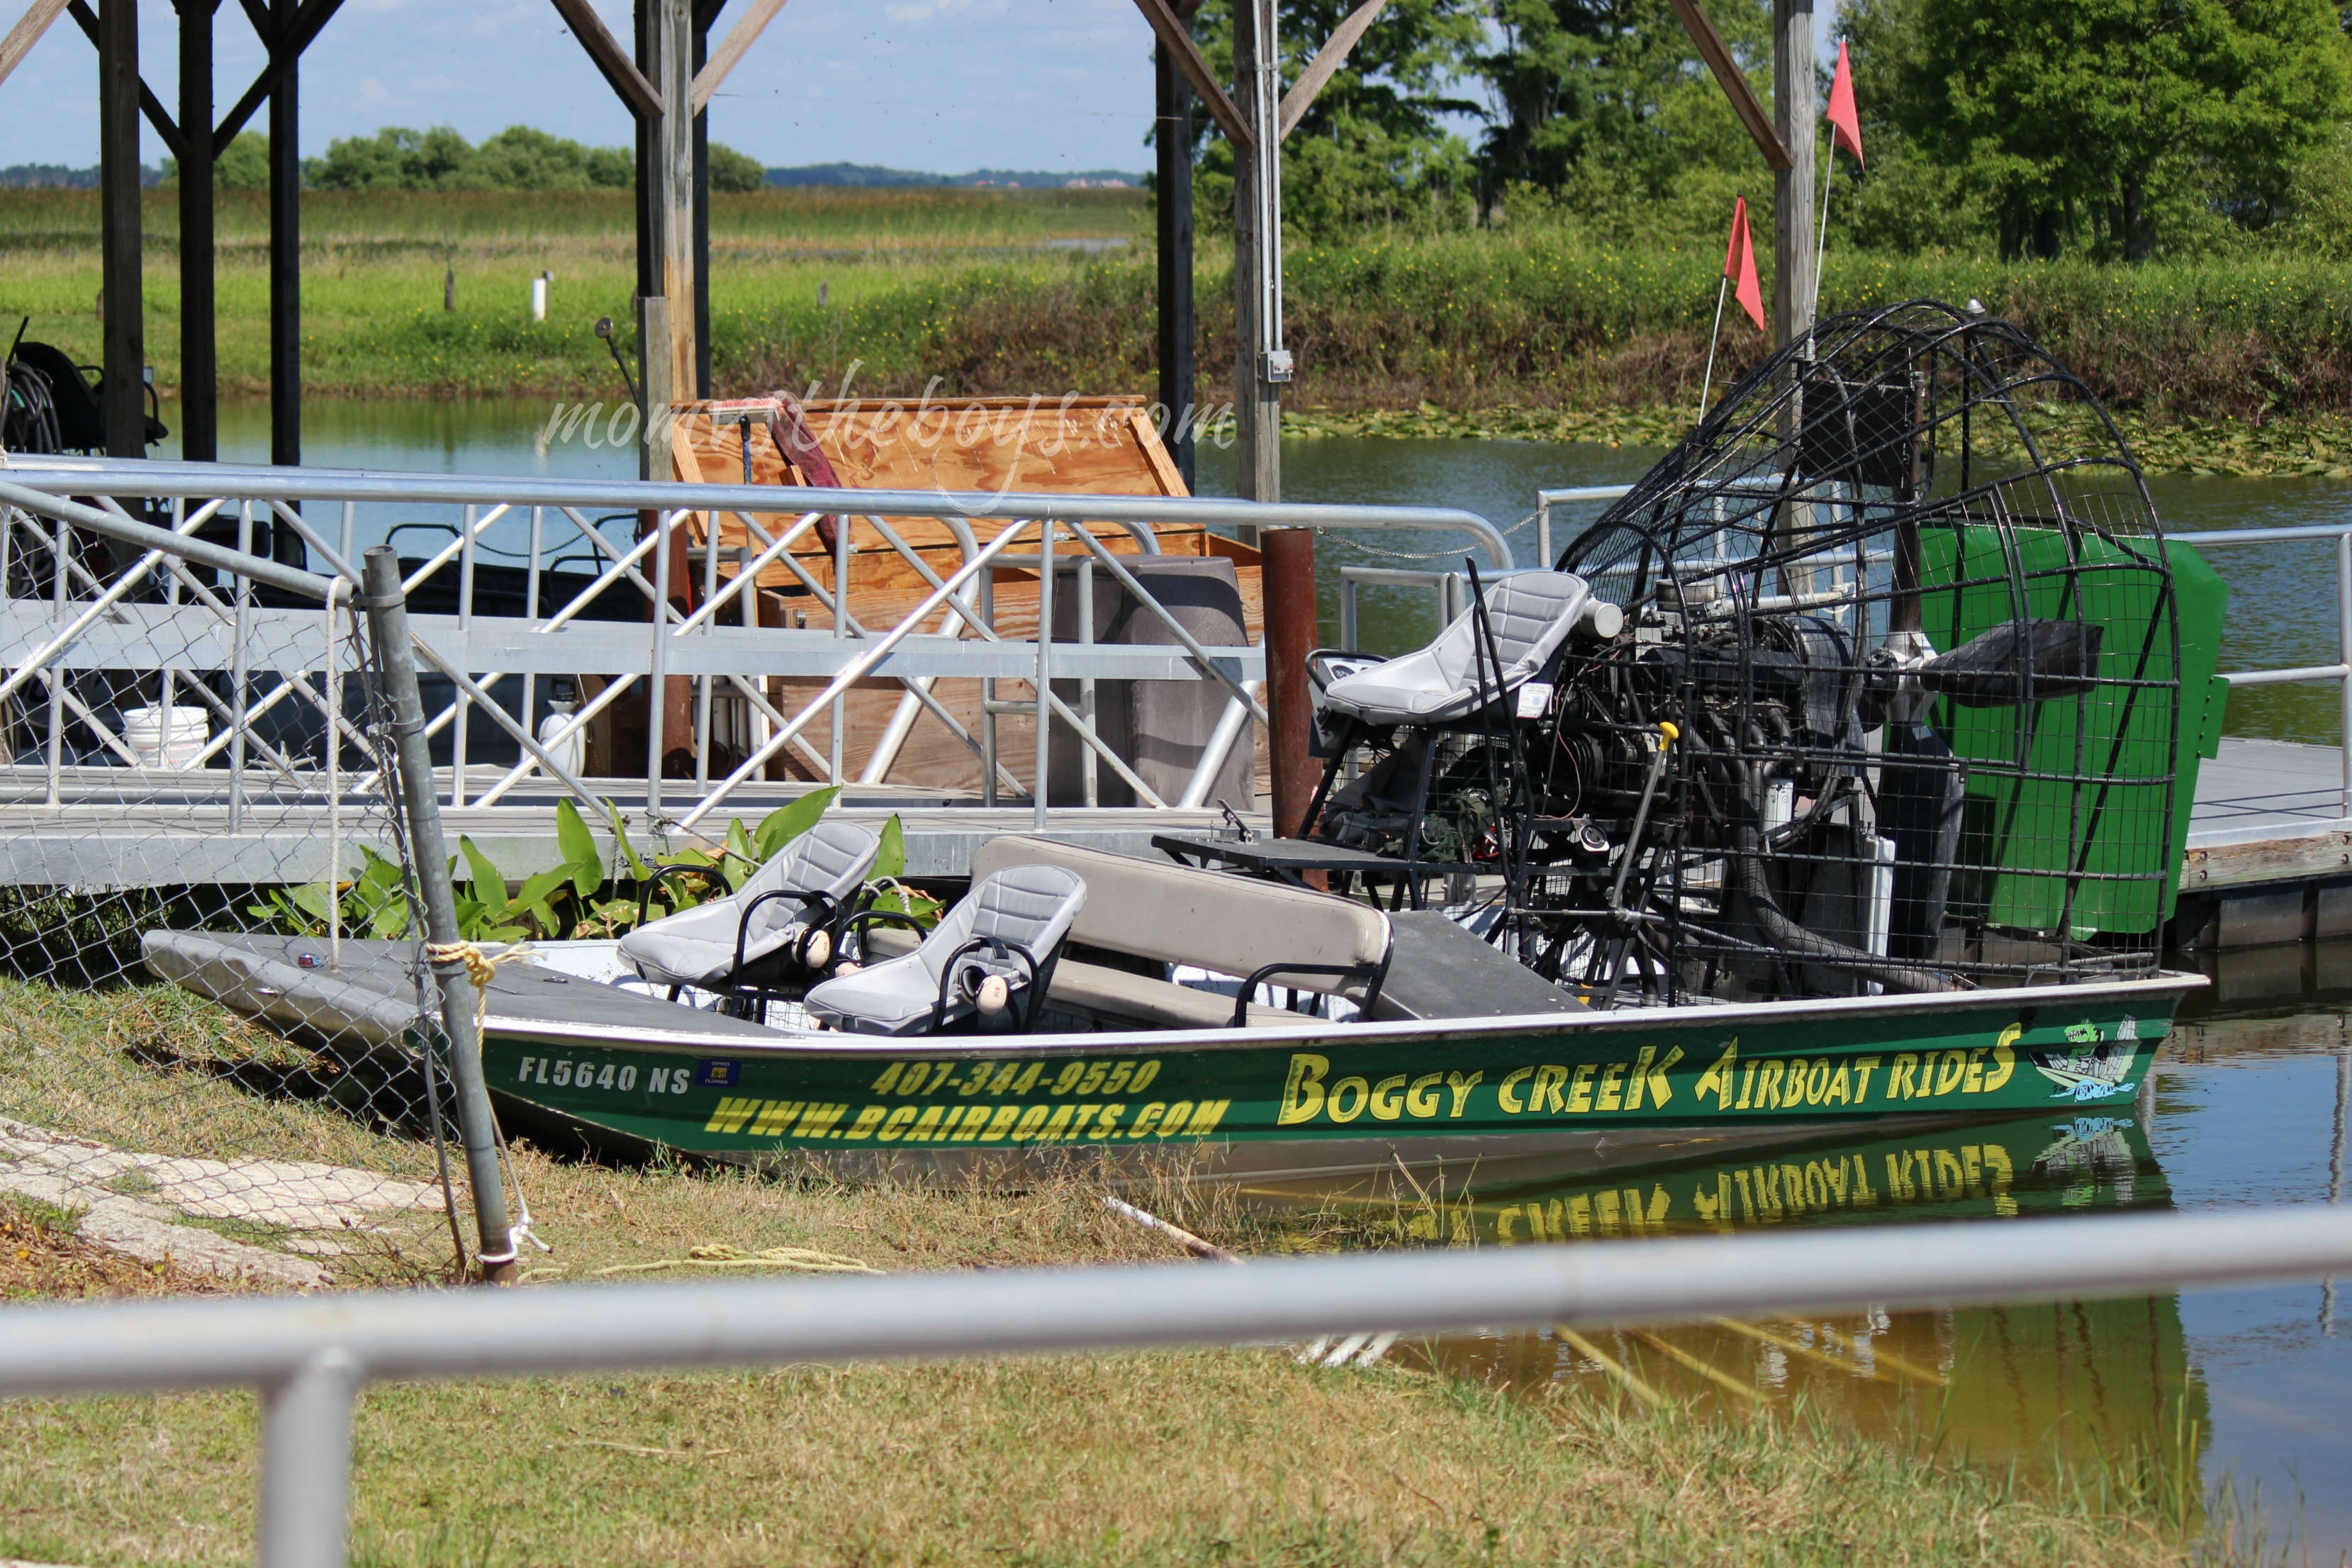 Boggy Creek Airboat Rides, Kissimmee Florida - Mom vs the Boys